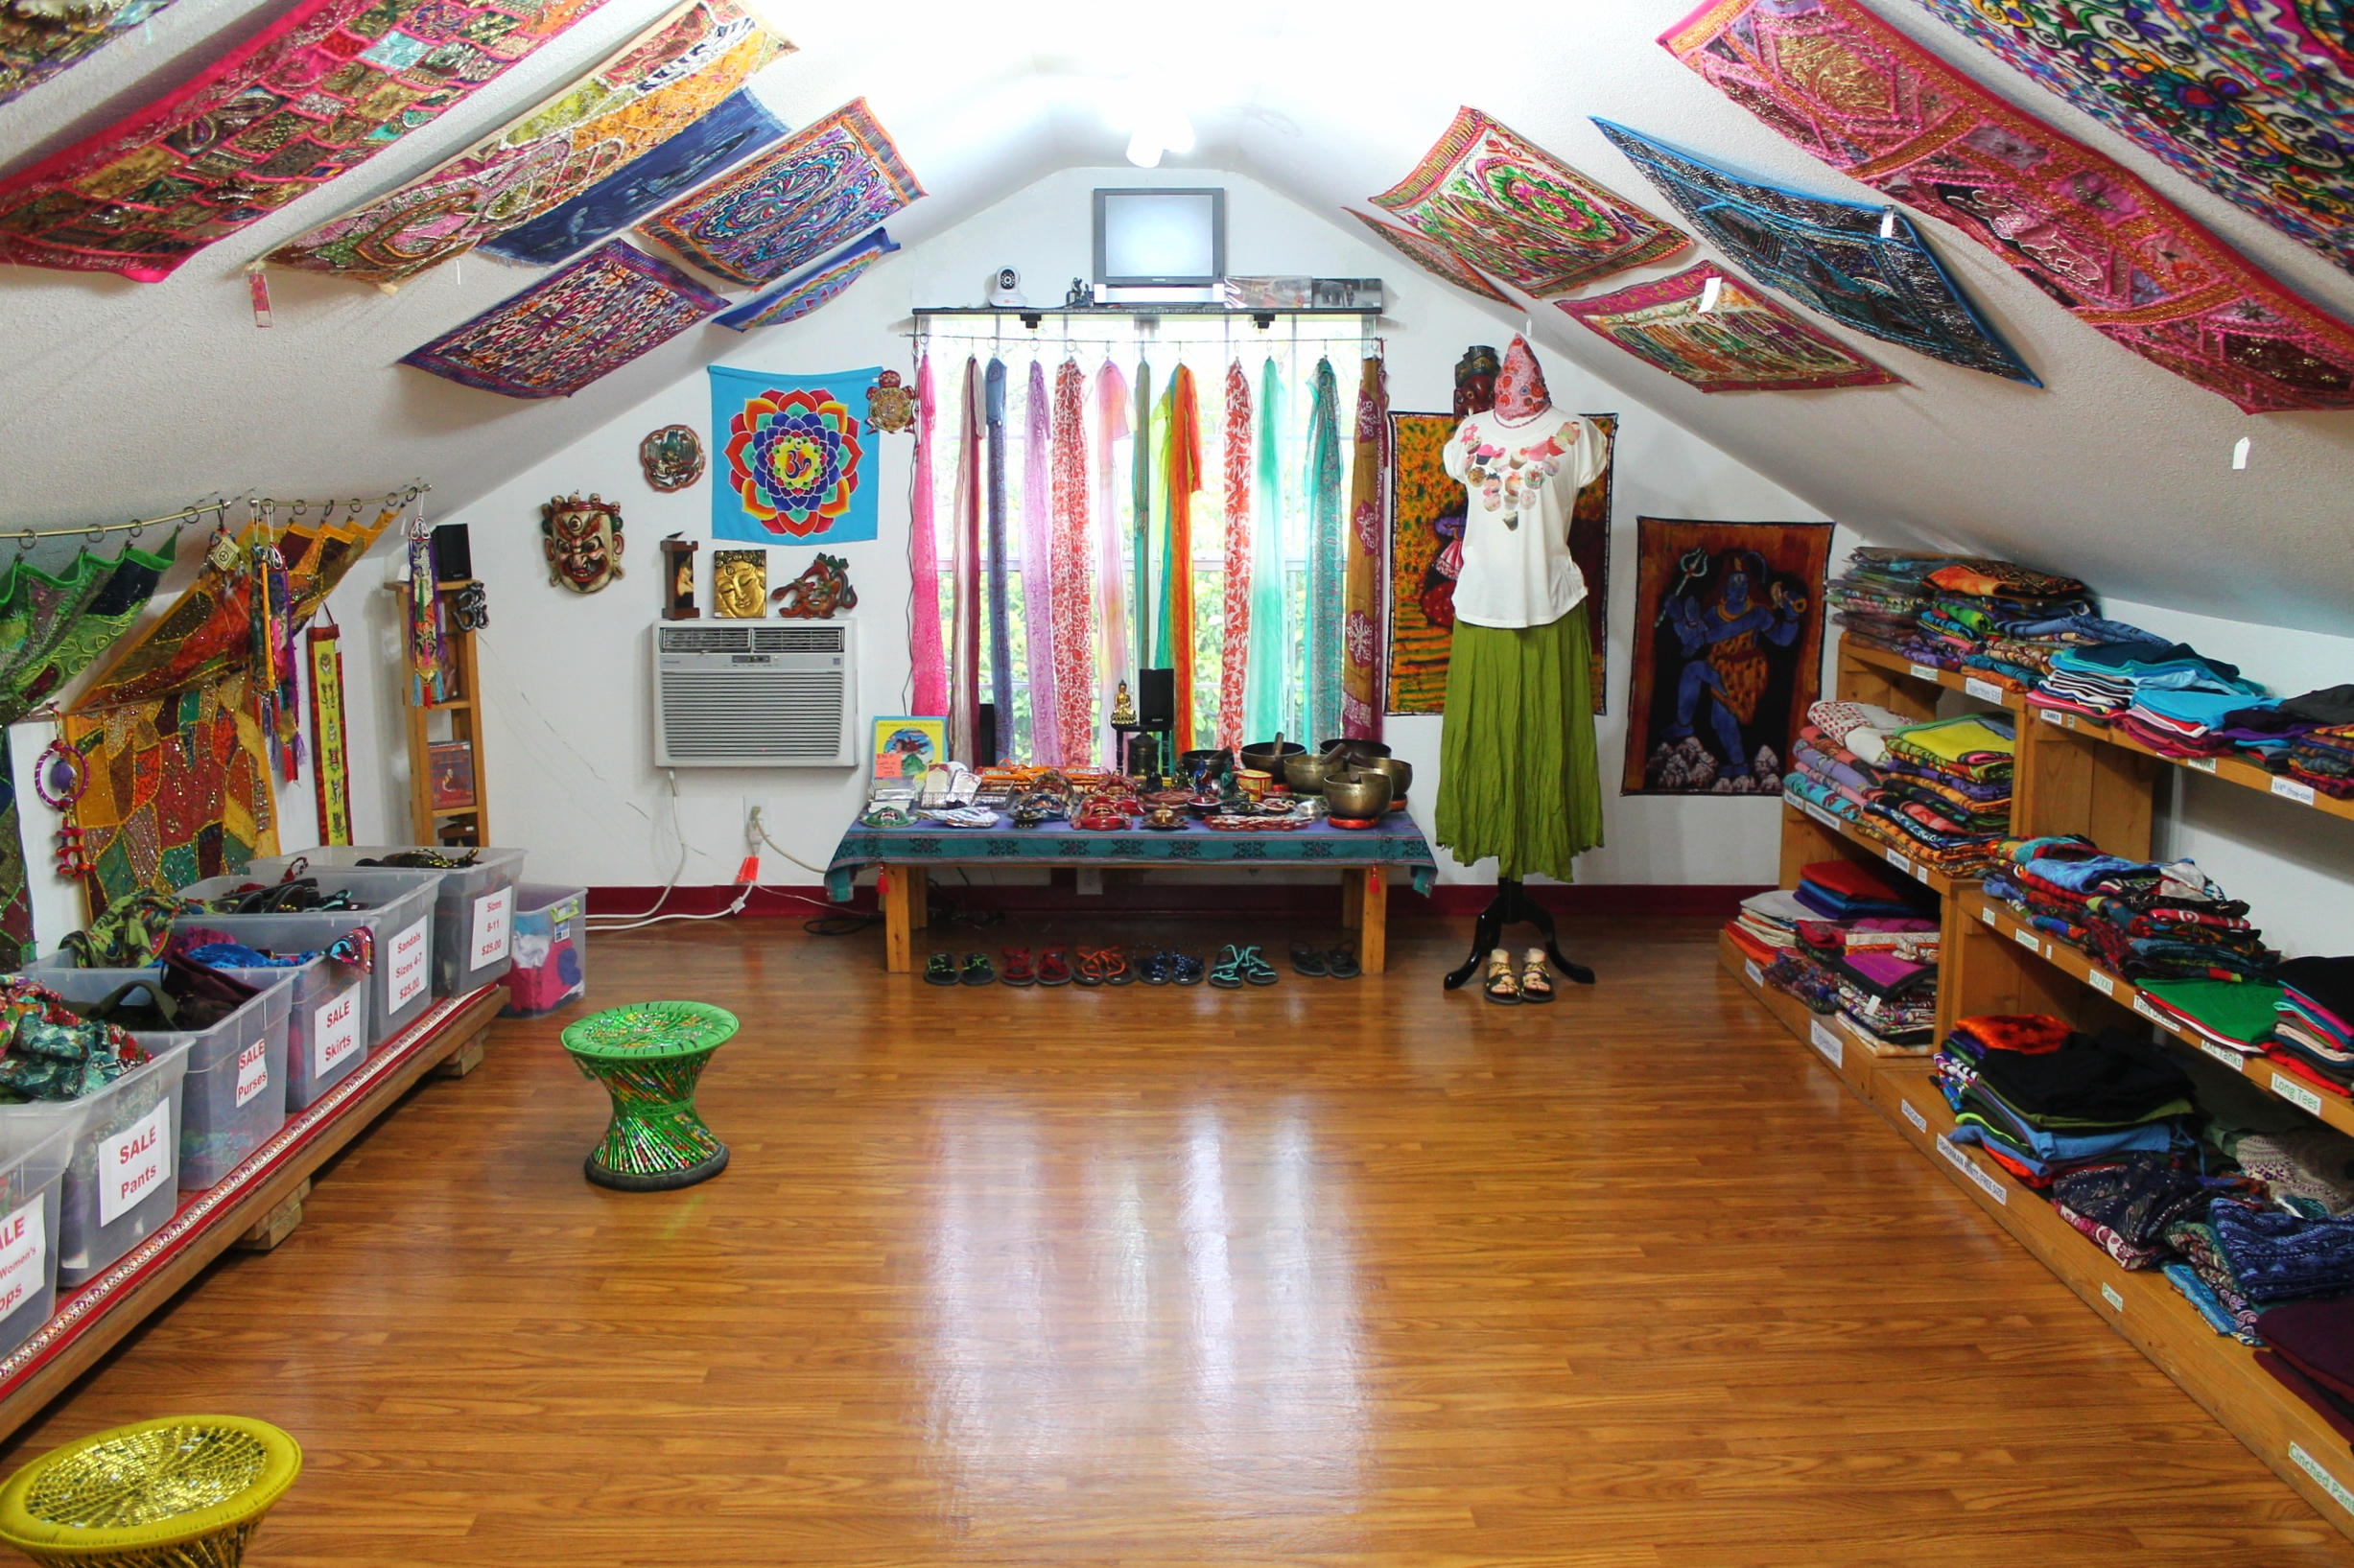 The upper floor of Juliet's Jewels houses a wide selection of clothes, scarves, tapestries, wall hangings, and even harder to find items such as authentic meditation singing bowls from Nepal.